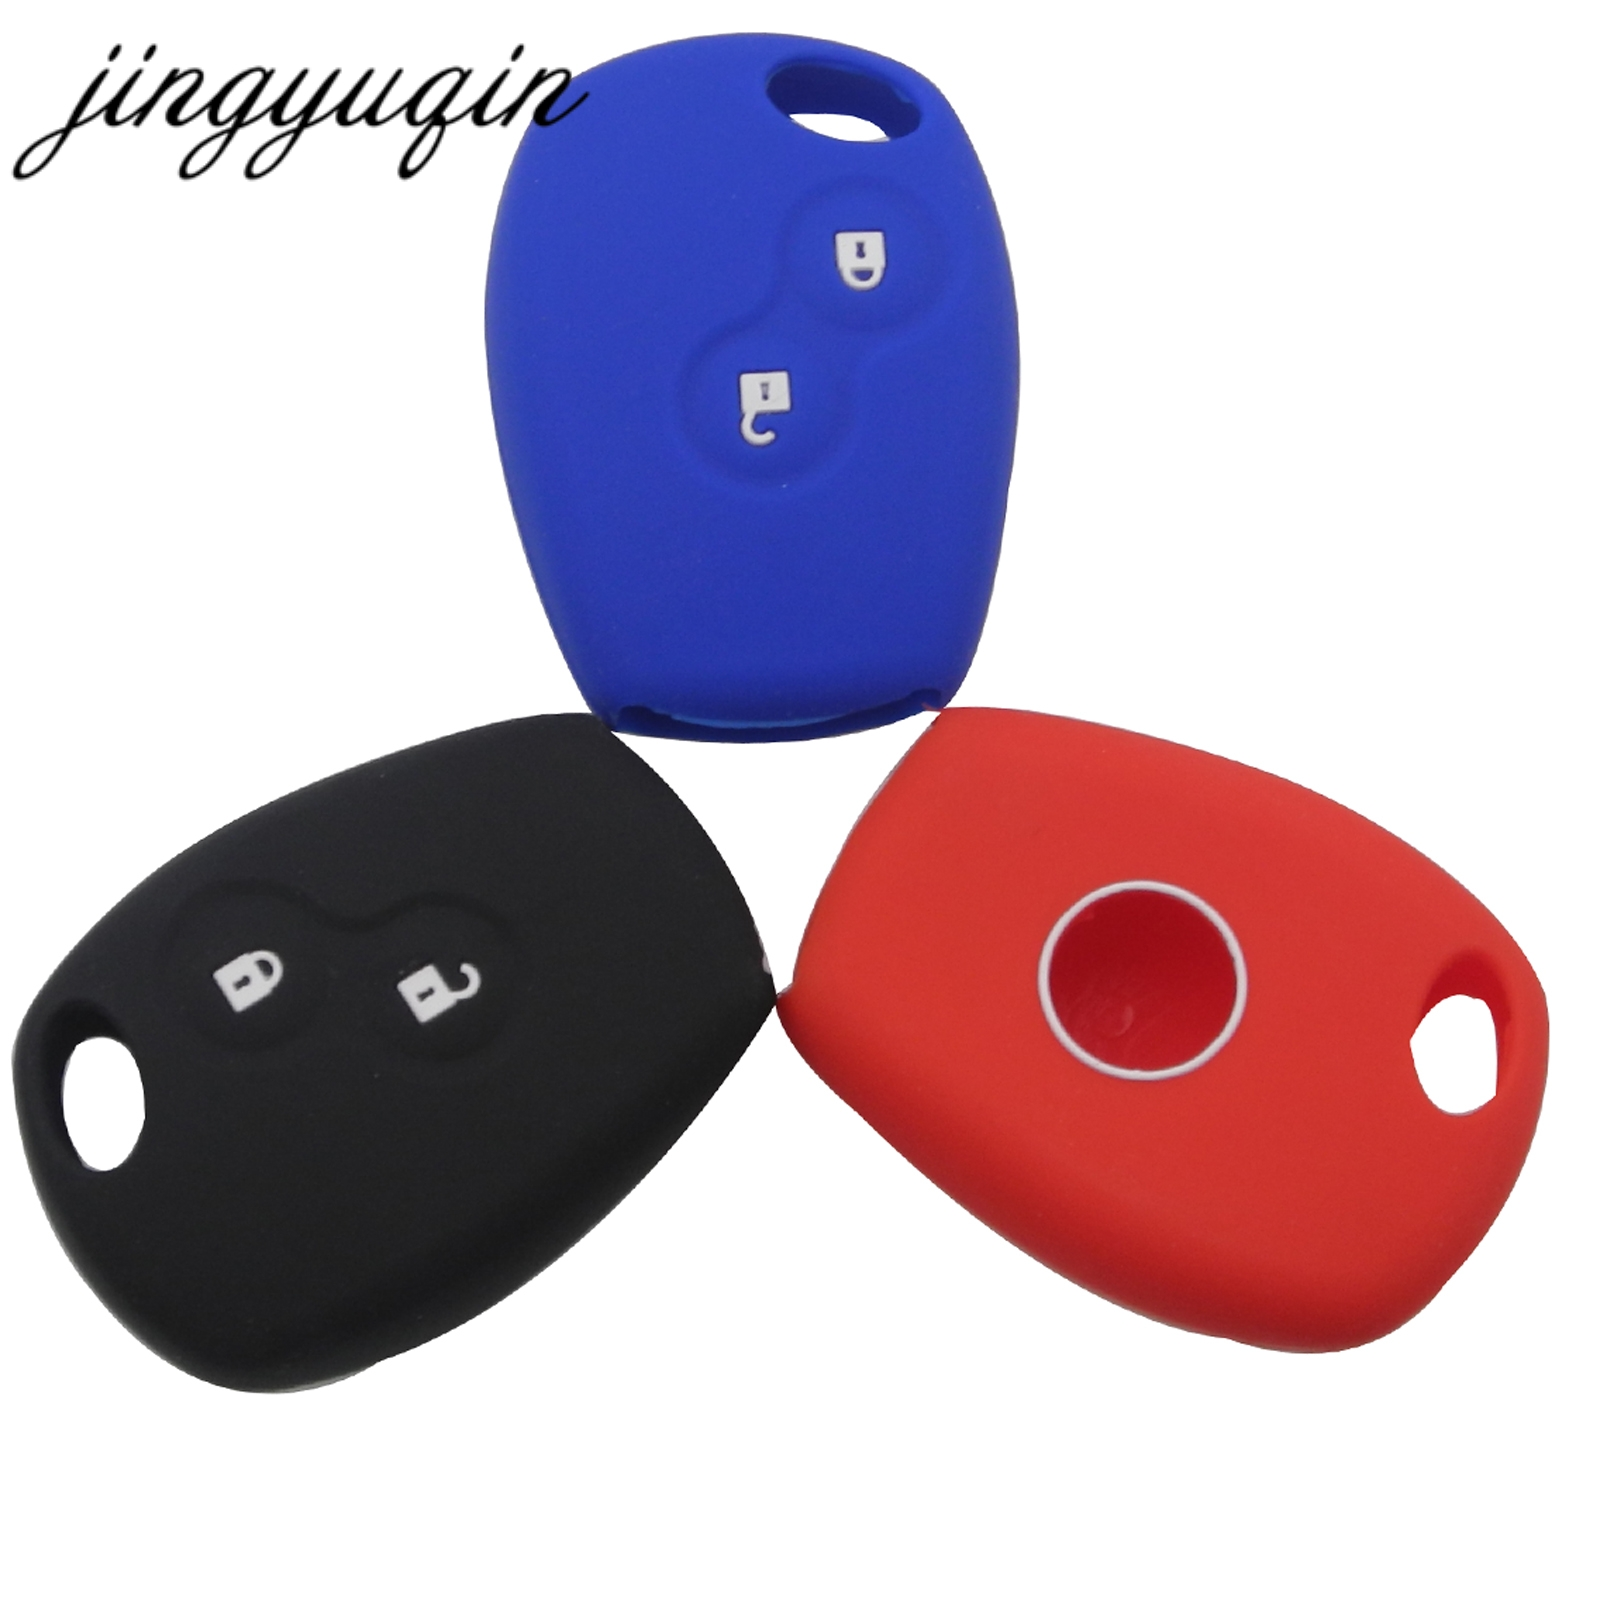 jingyuqin Silicone Key Case For Renault Megane Modus Laguna Duster Logan DACIA Sandero Fluence Clio Kango for Niaan Almera Opel for renault megane 2 fluence duster logan small hole ventilate wear resistance pu leather front